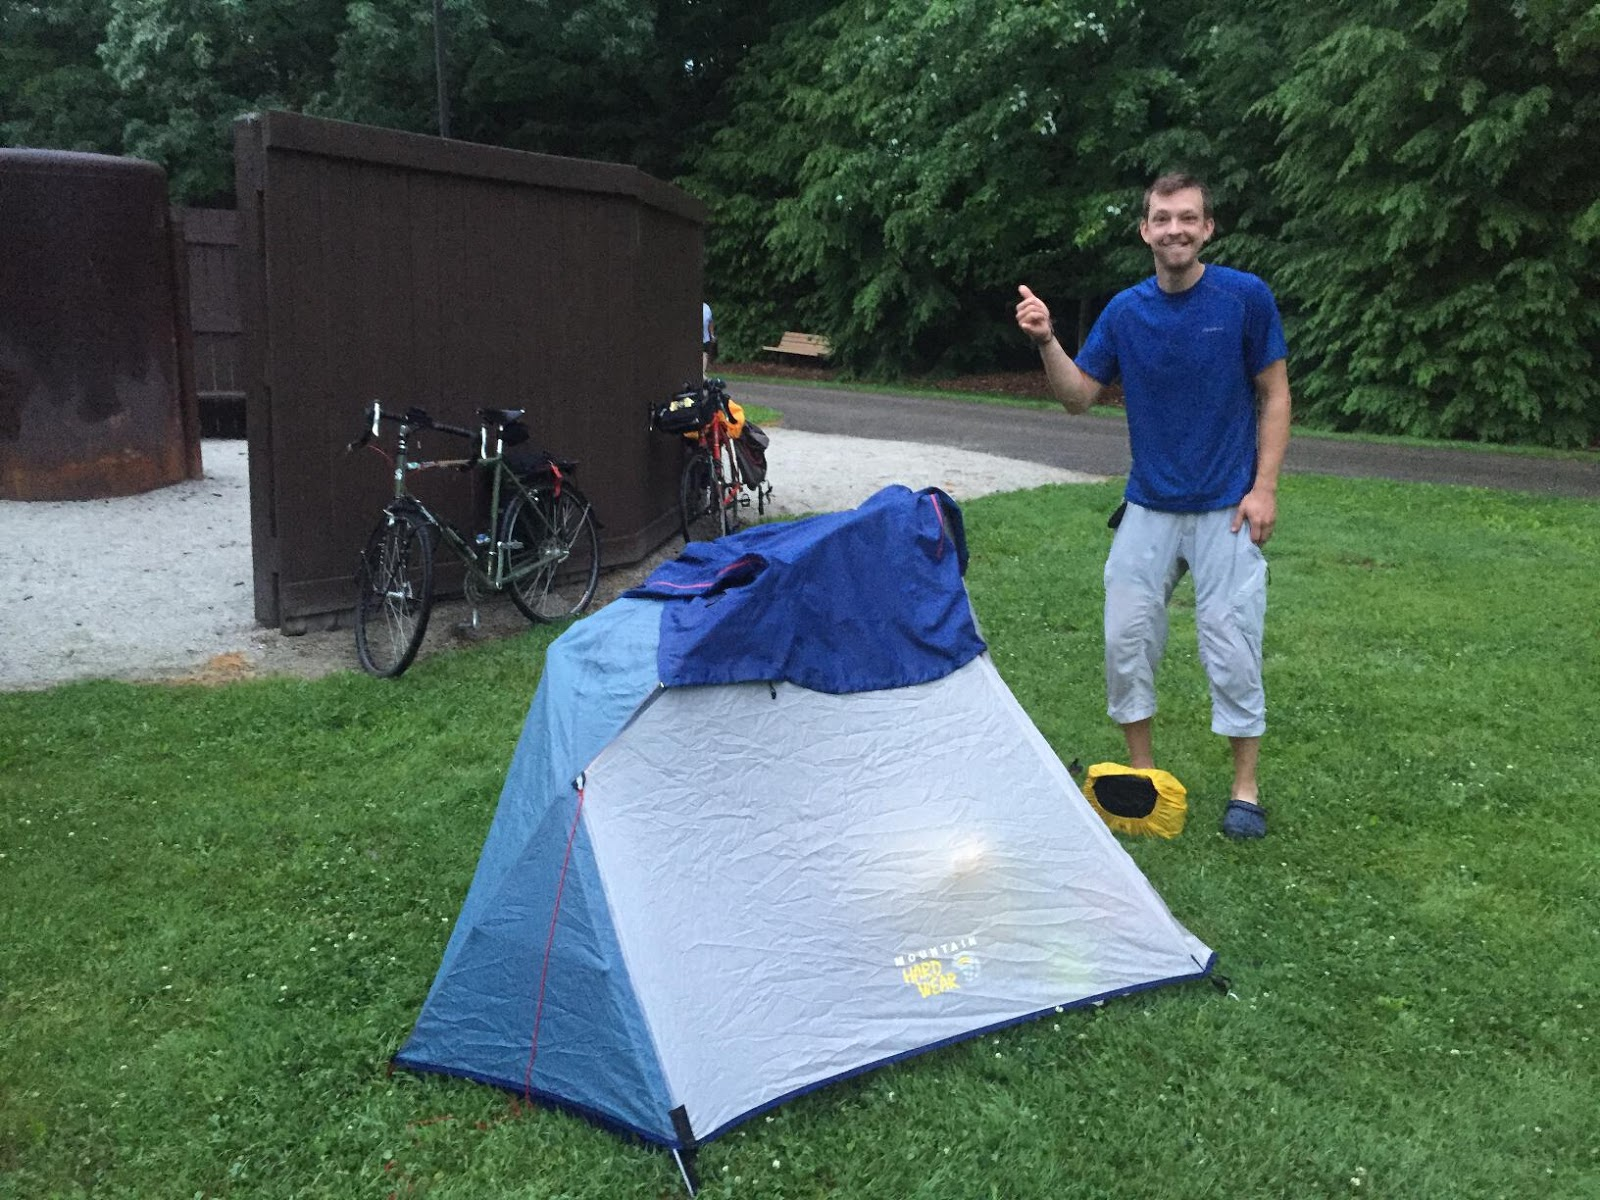 ... on the Great Divide Mountain Bike Route next month had a lightweight bivvy sack and tarp setup instead of a tent which he carried on his Salsa Fargo. & Century Cycles Blog: Trip Report: Bike Camp-Out Night Ride on the ...